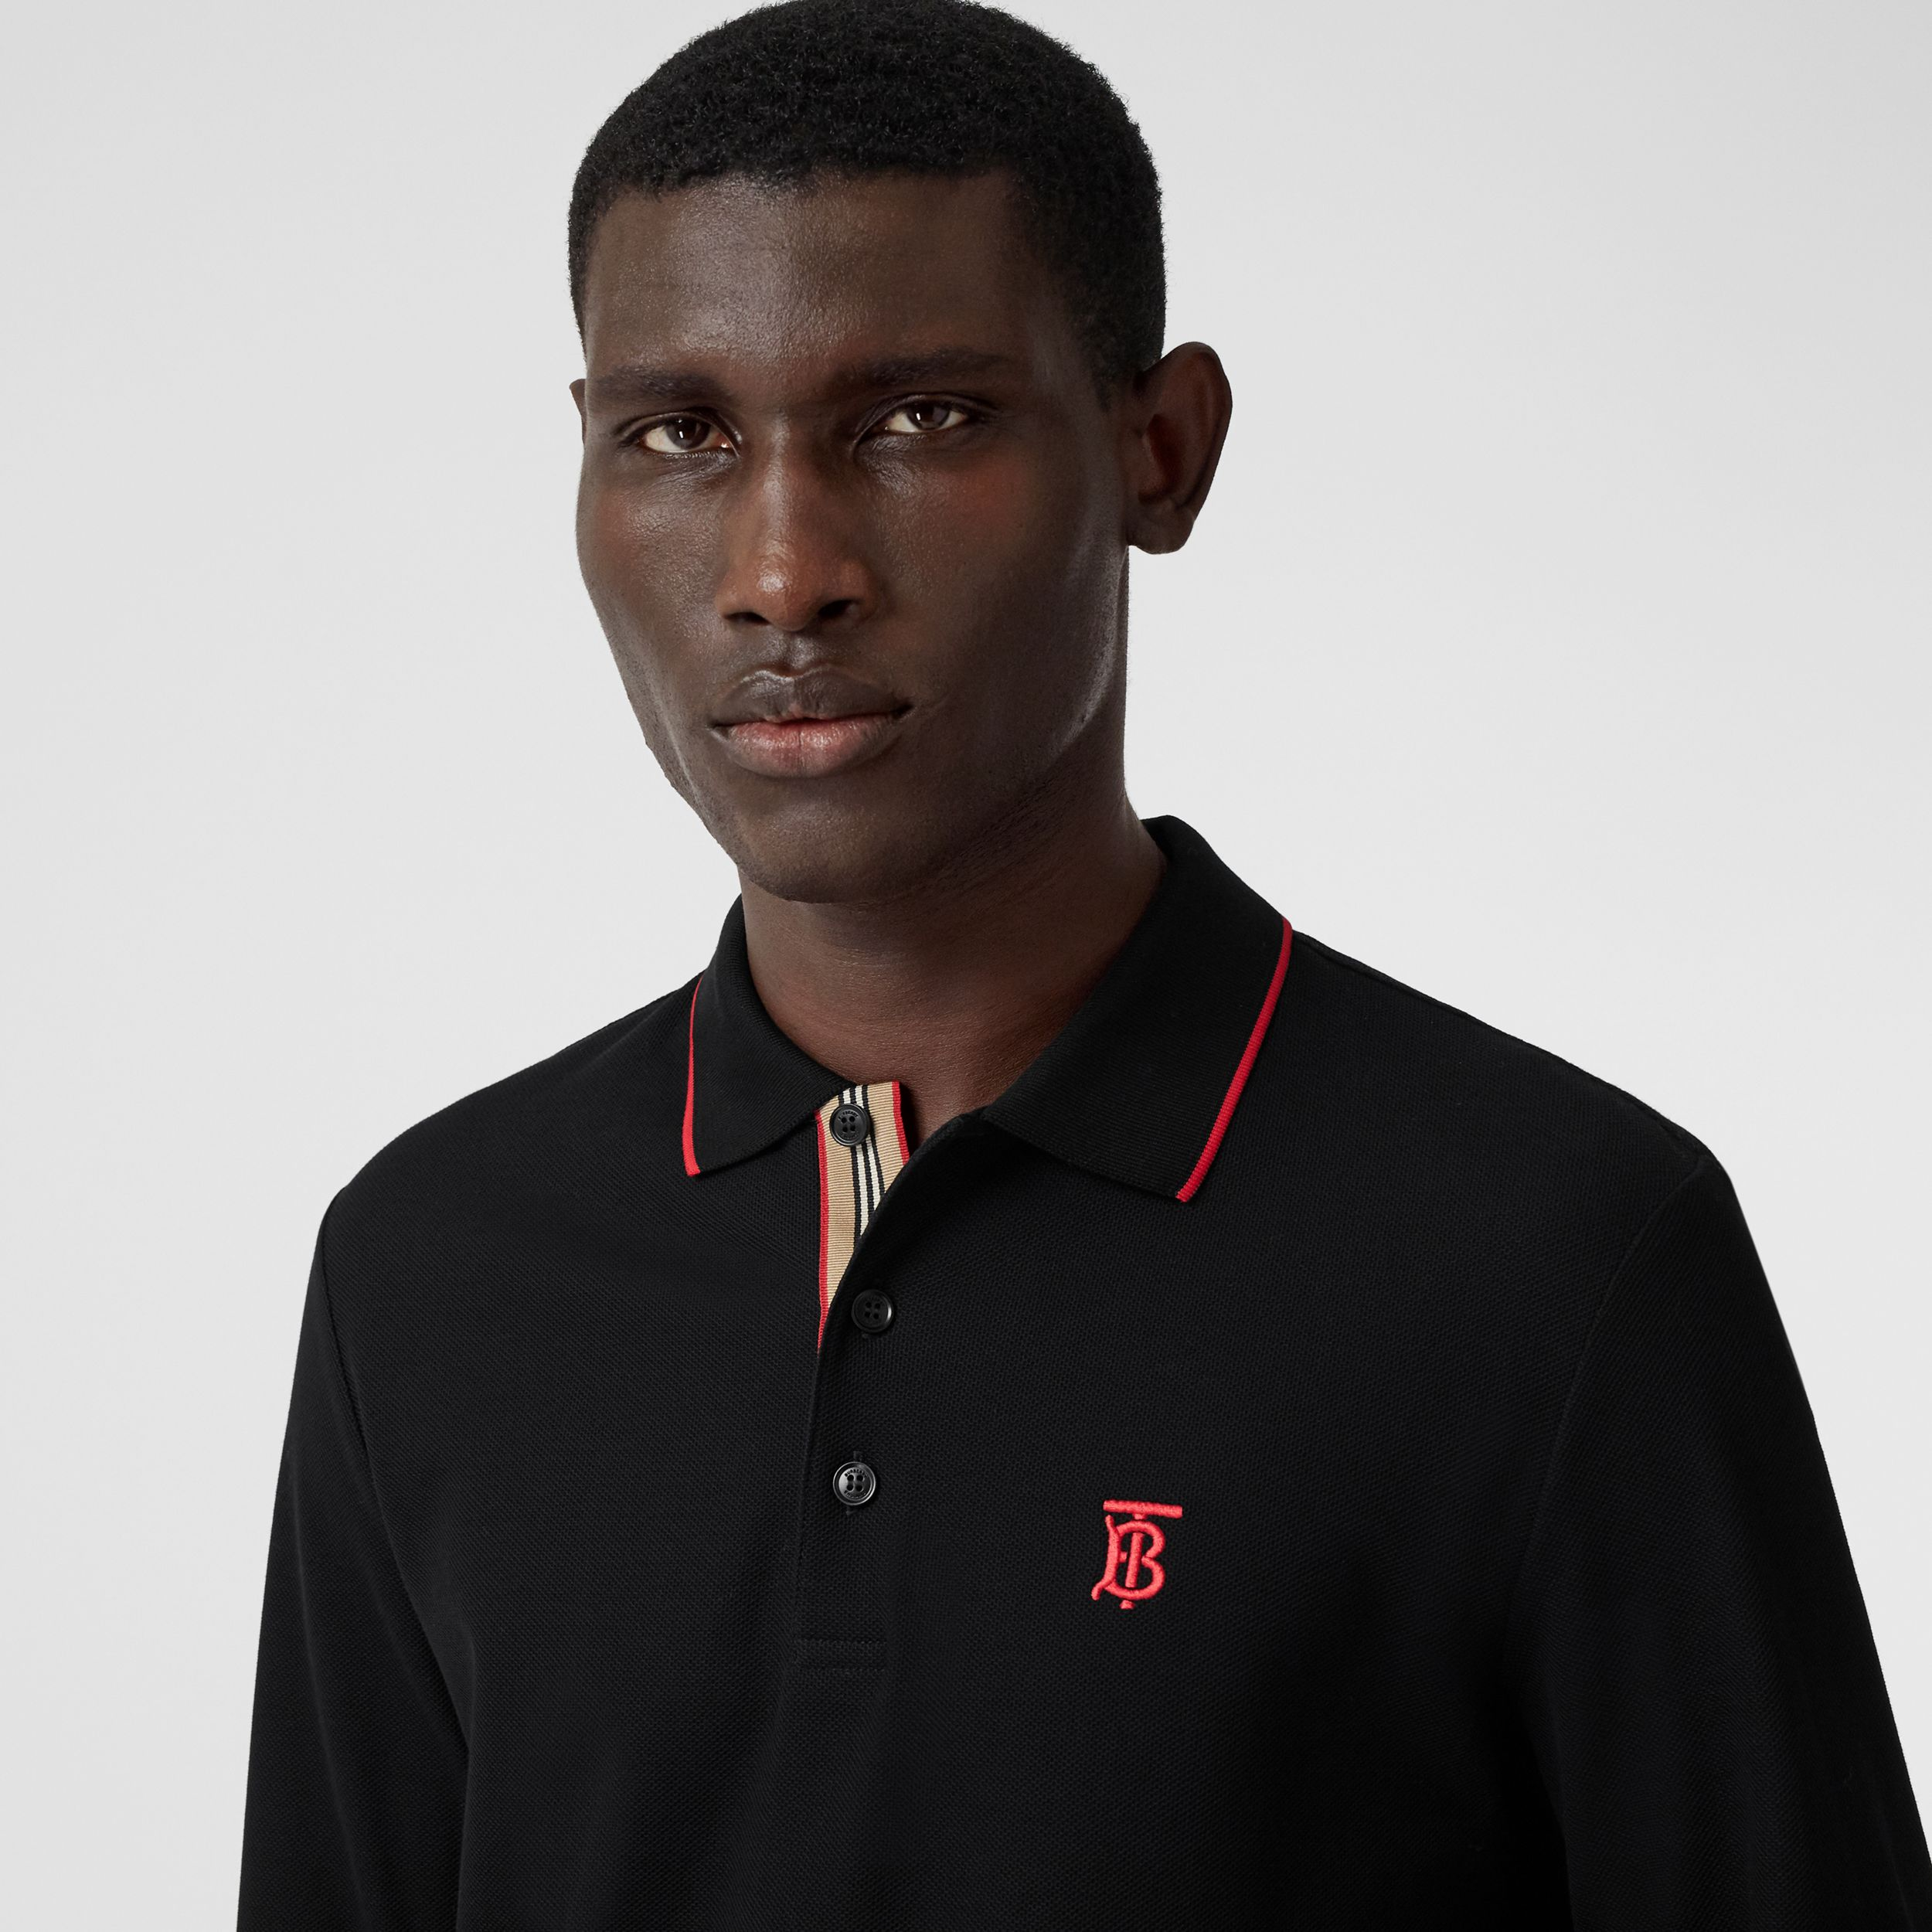 Long-sleeve Monogram Motif Cotton Piqué Polo Shirt in Black - Men | Burberry Hong Kong S.A.R. - 2